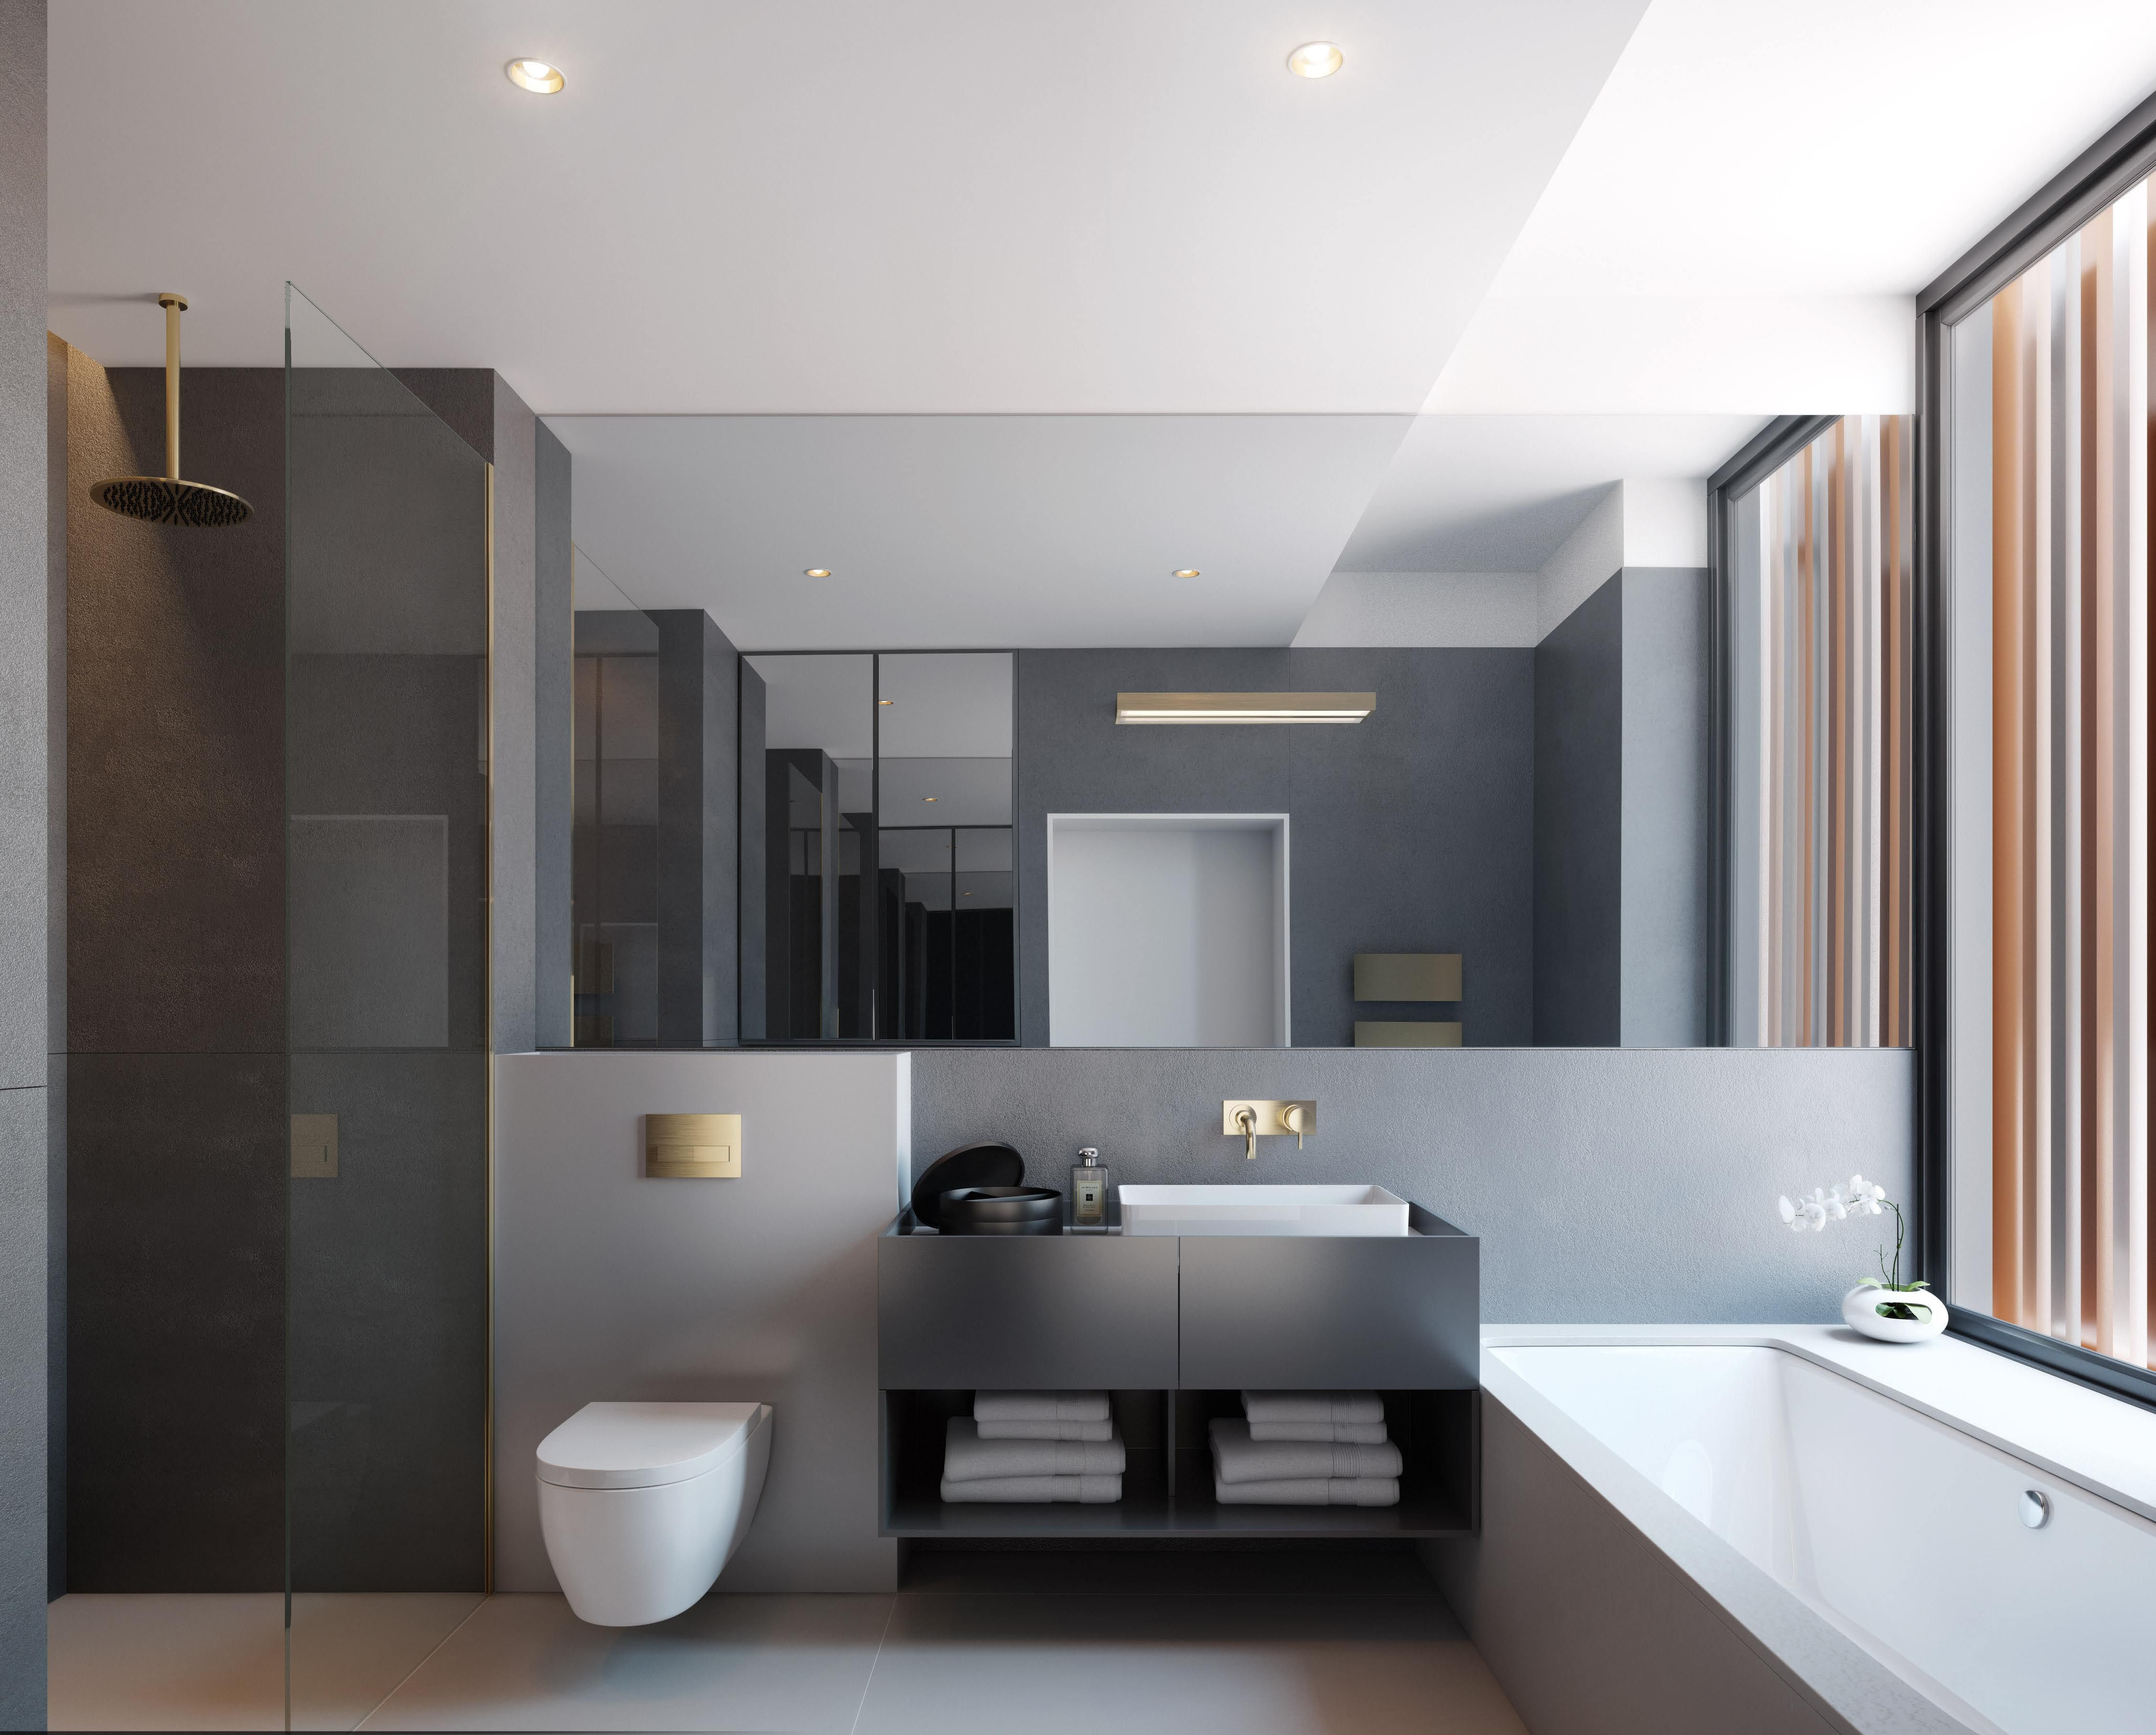 Penthouse Bathroom   The Master Bathroom Flooded With Natural Light Invites  Daily Indulgence And Relaxing Withdrawal